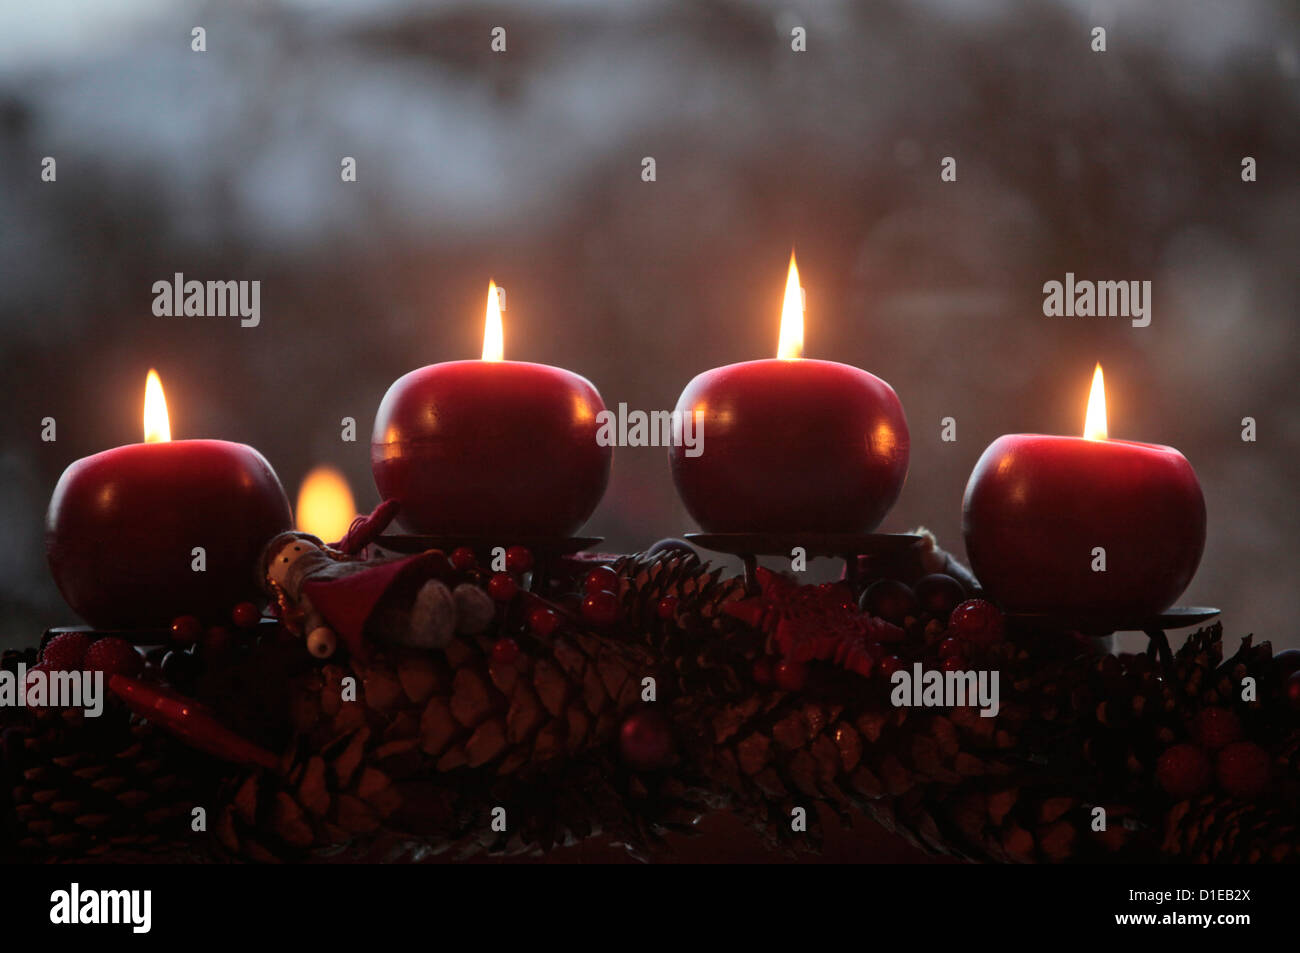 Advent candles, Saint-Pierre-en-Faucigny, Haute Savoie, France, Europe - Stock Image